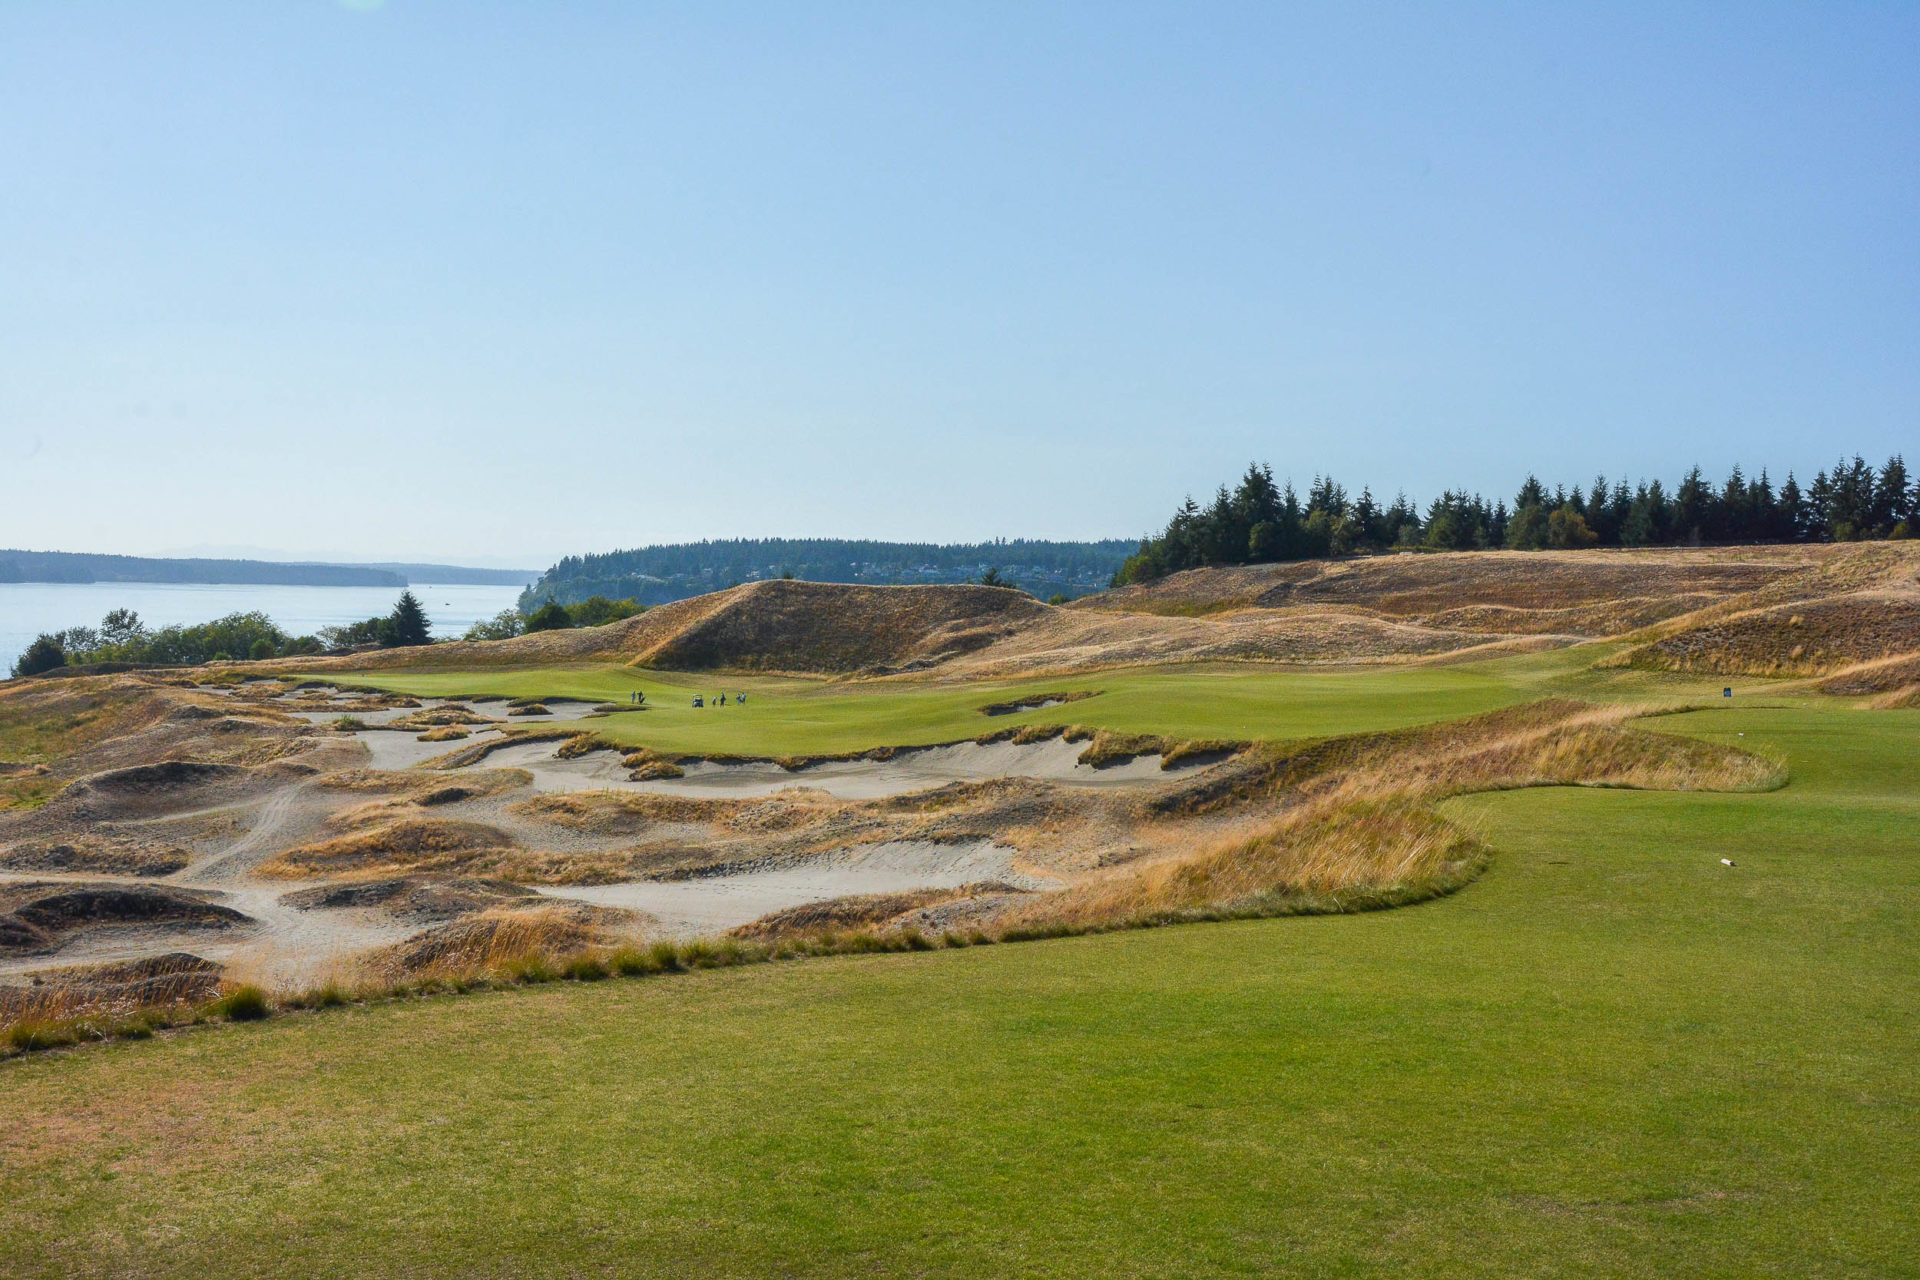 The 14th at Chambers Bay.